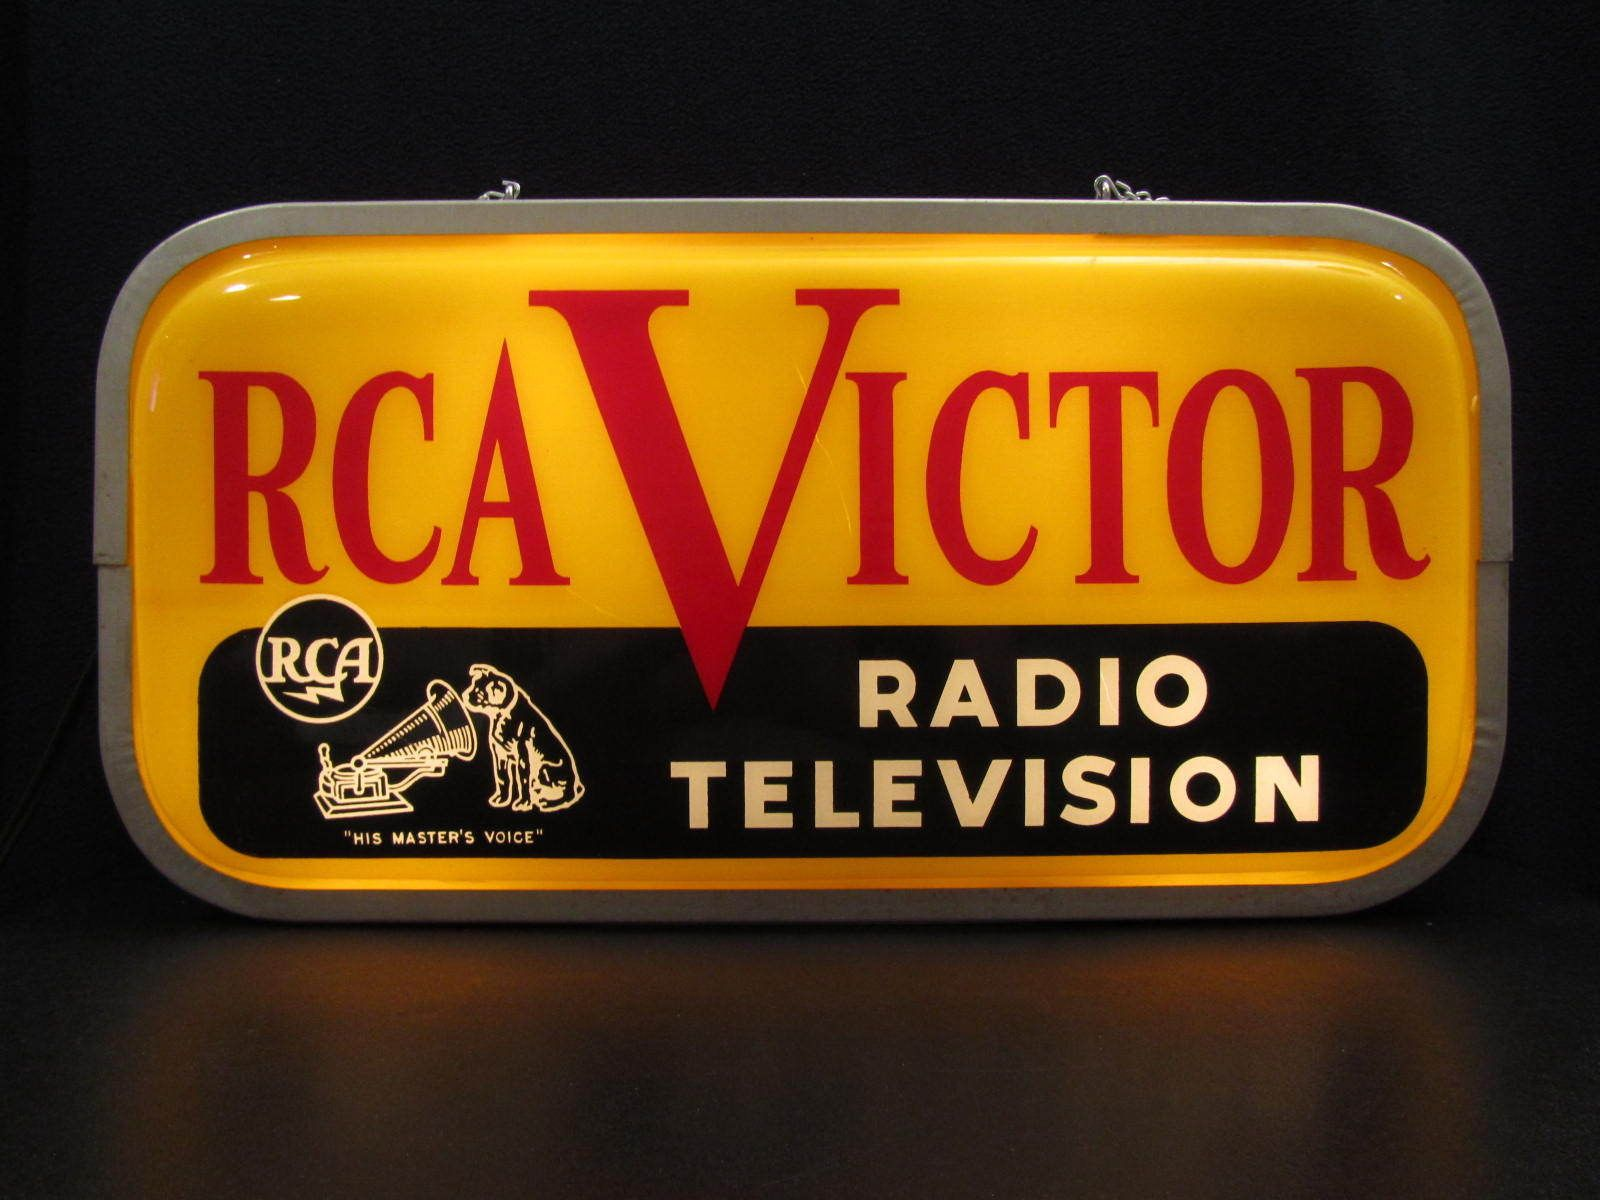 Was Rca nipper vintage advertising history amusing